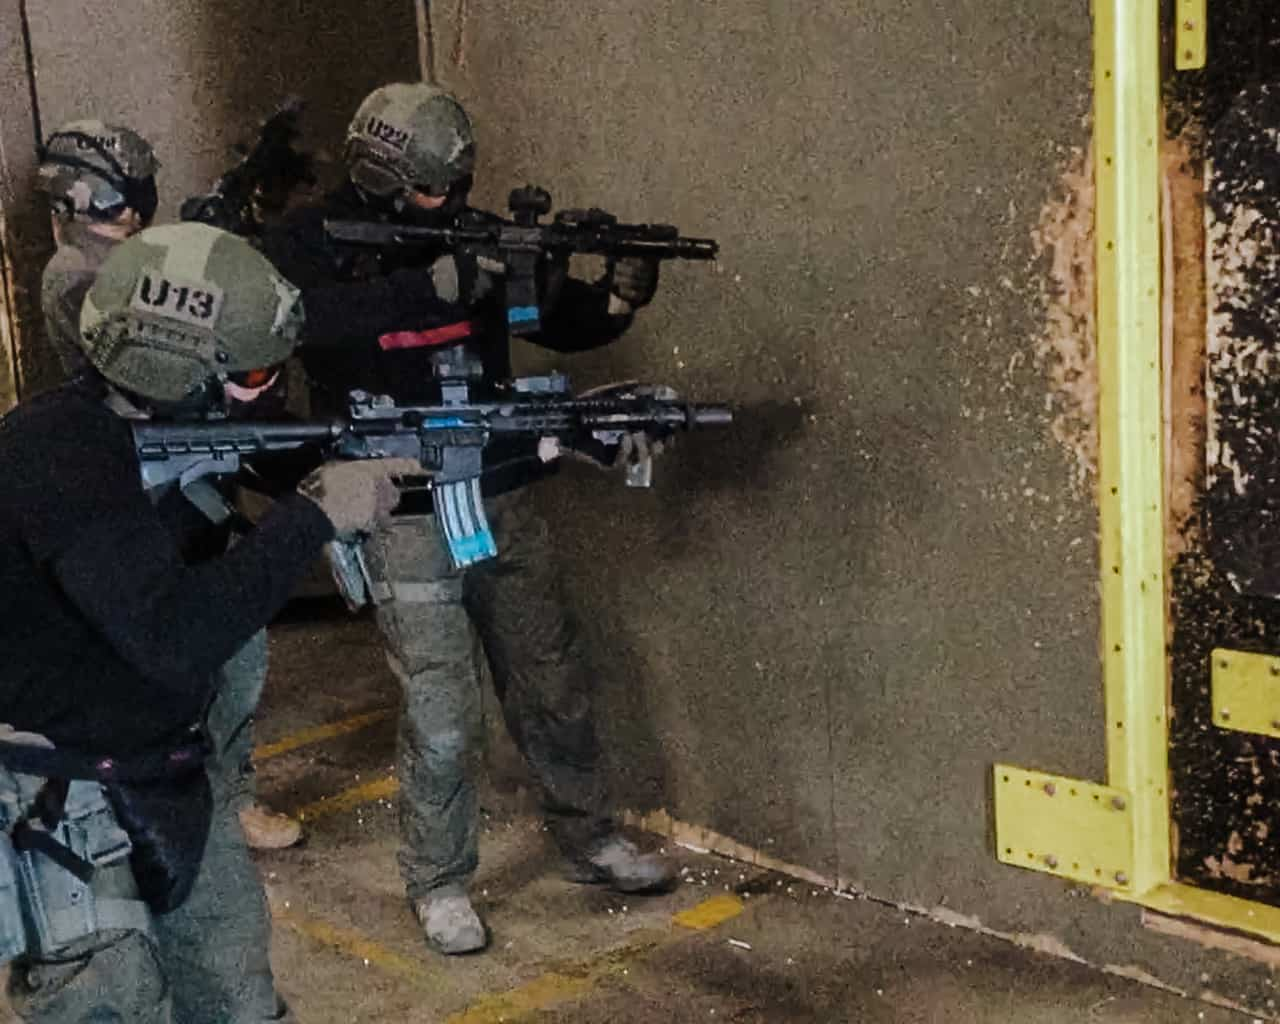 SWAT entry team taking the room from the outside